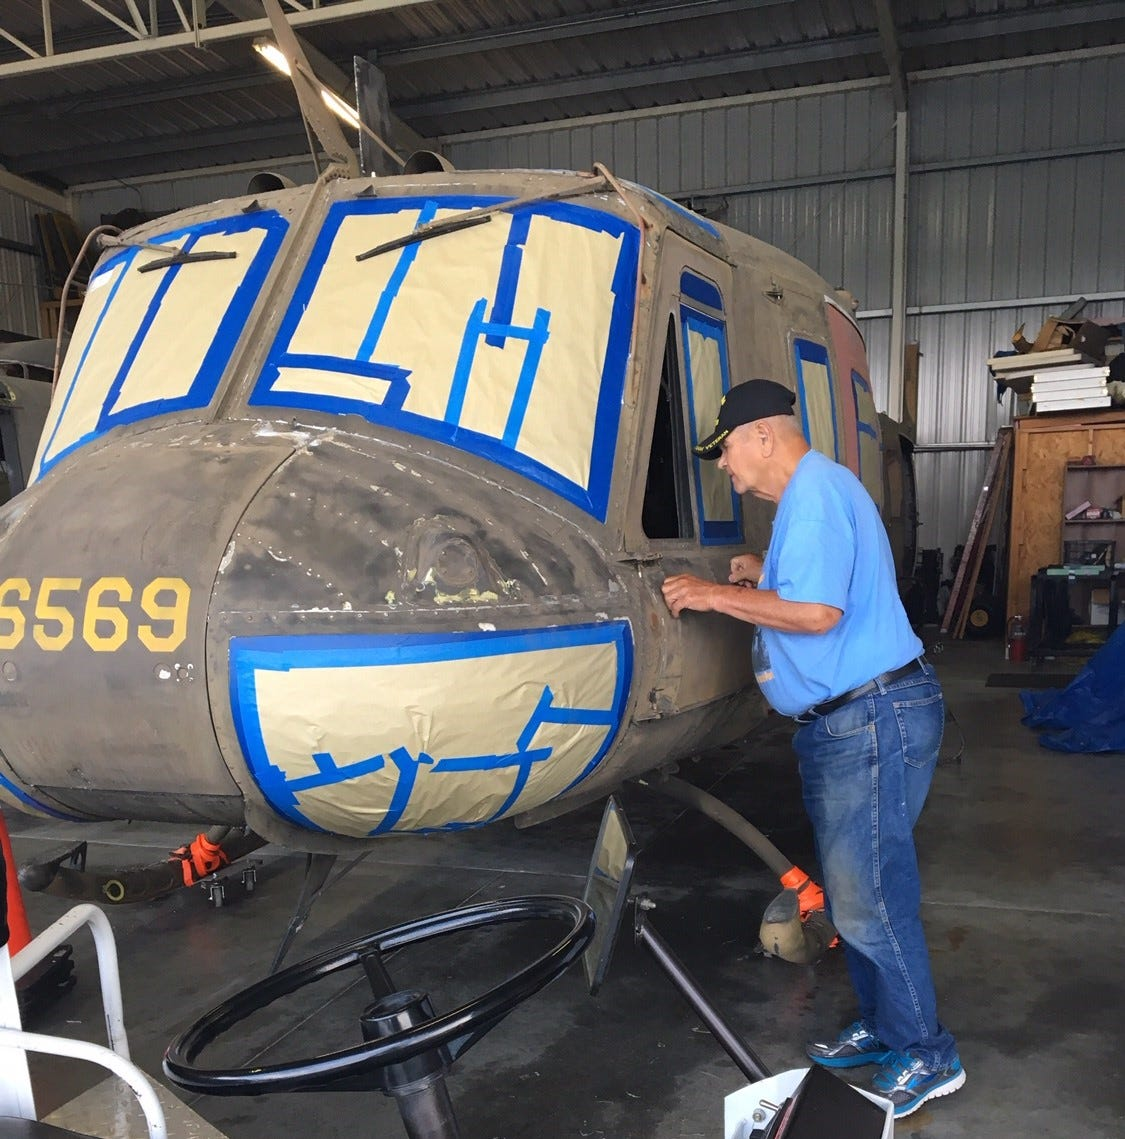 'Huey' helicopter scheduled to be installed at Veterans Memorial Park